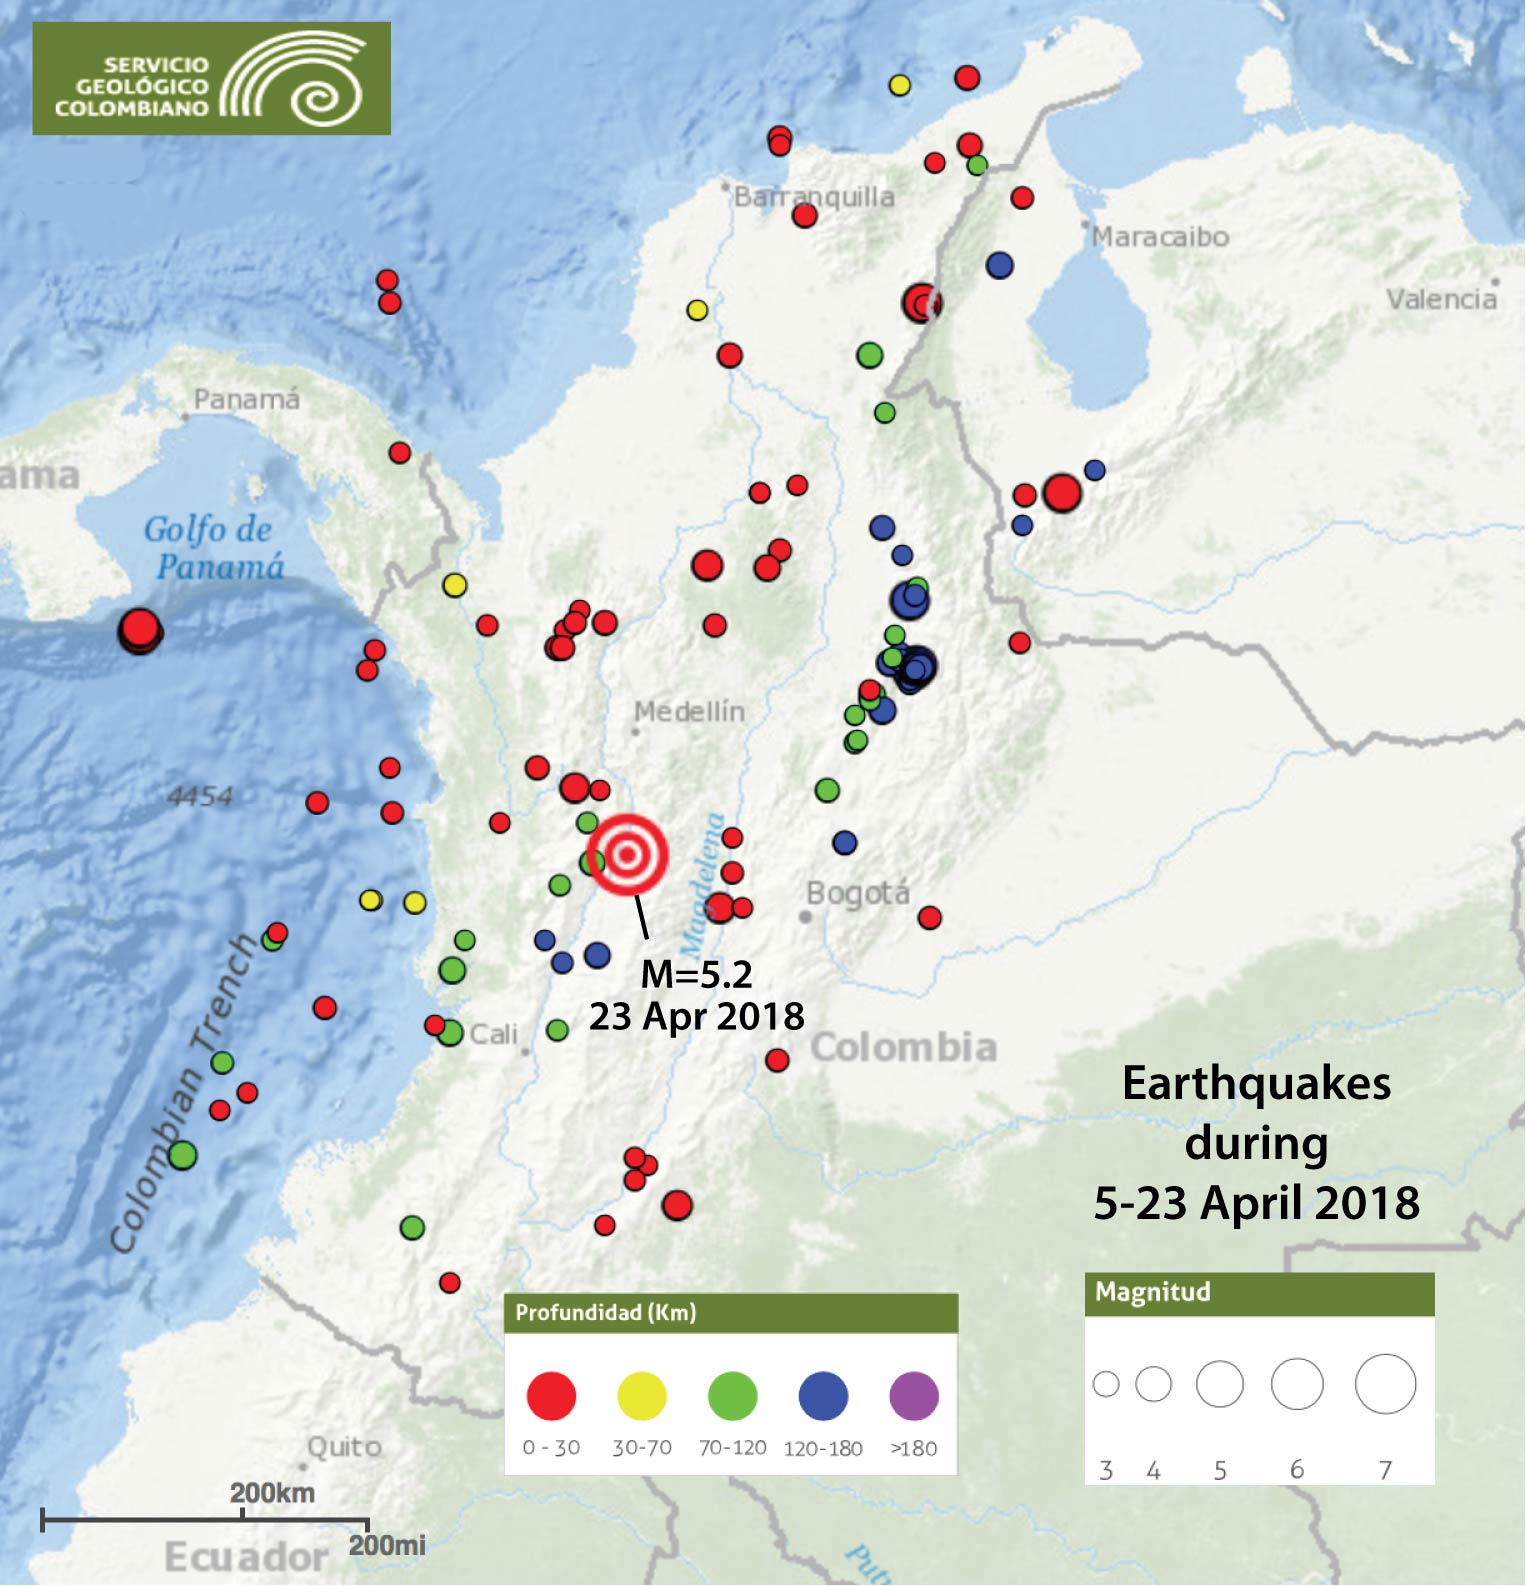 This map from the Servicio Geologico Colombiano shows the last 2.5 weeks of earthquakes in Colombia. What this highlights is that Colombia has experienced numerous shallow and deep earthquakes. In the event of a large magnitude shallow event, damage could be significant in Colombia.